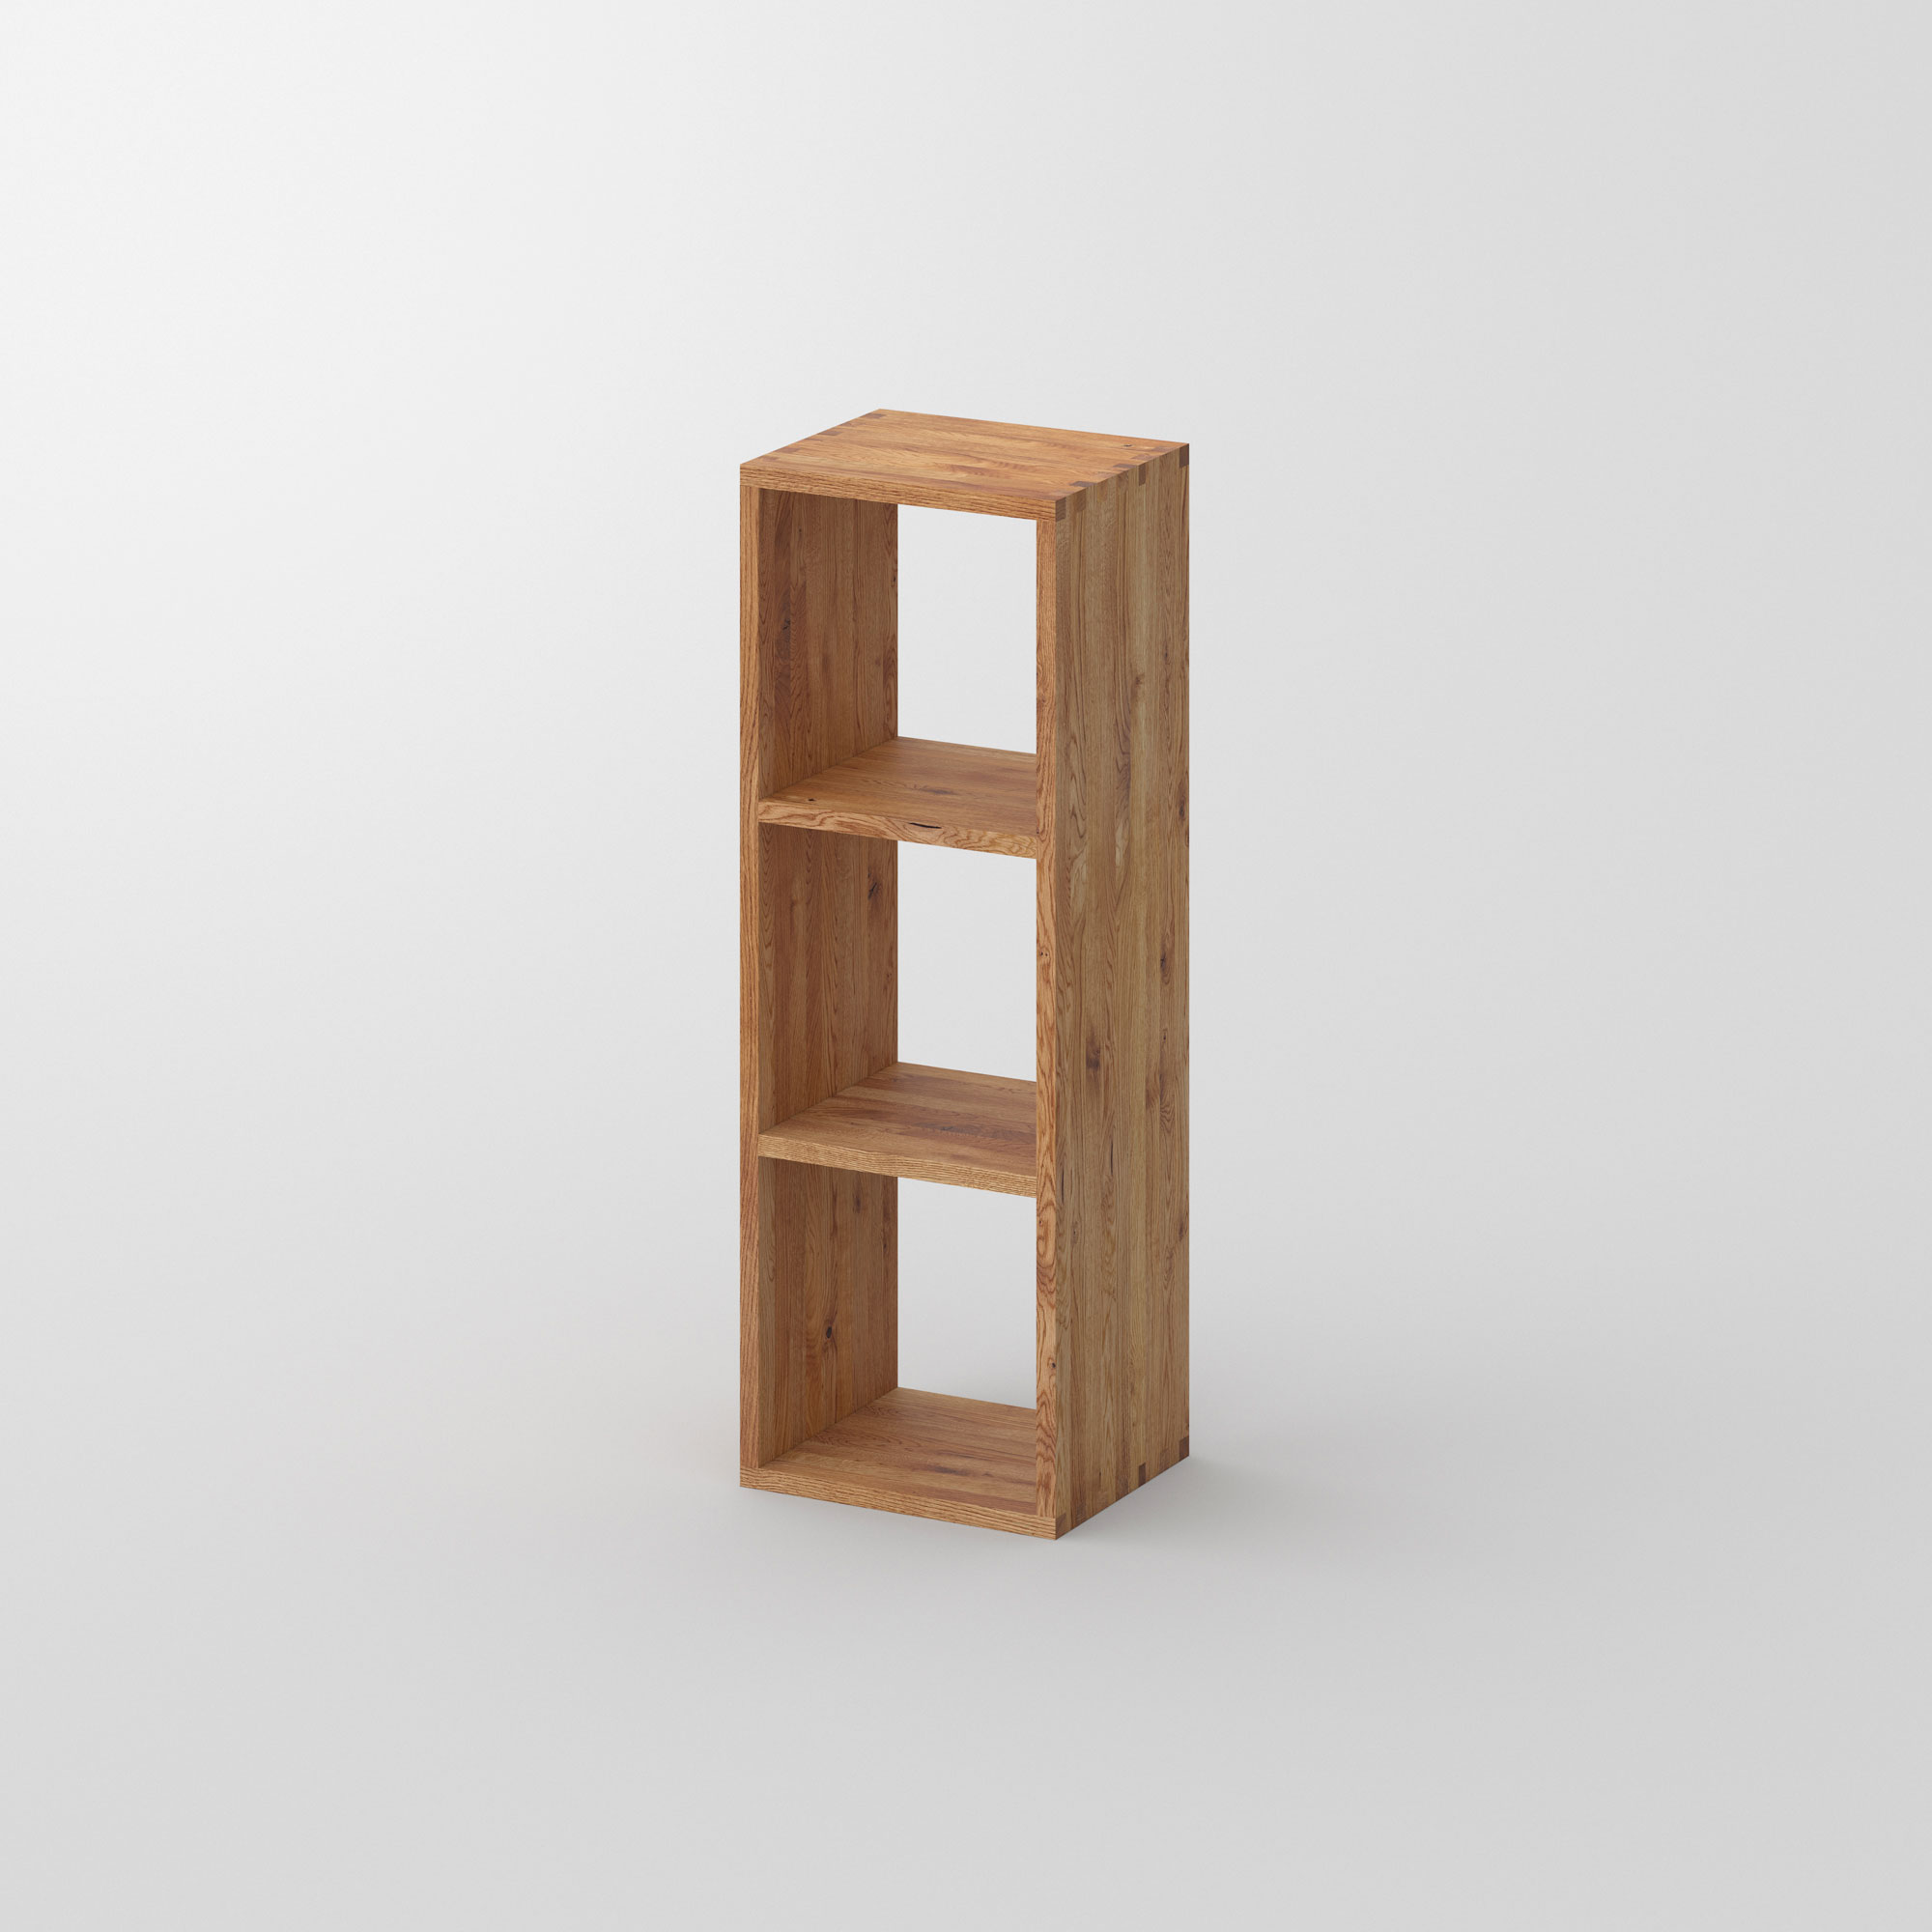 Designer Wood Shelf PISA G cam1 custom made in solid wood by vitamin design